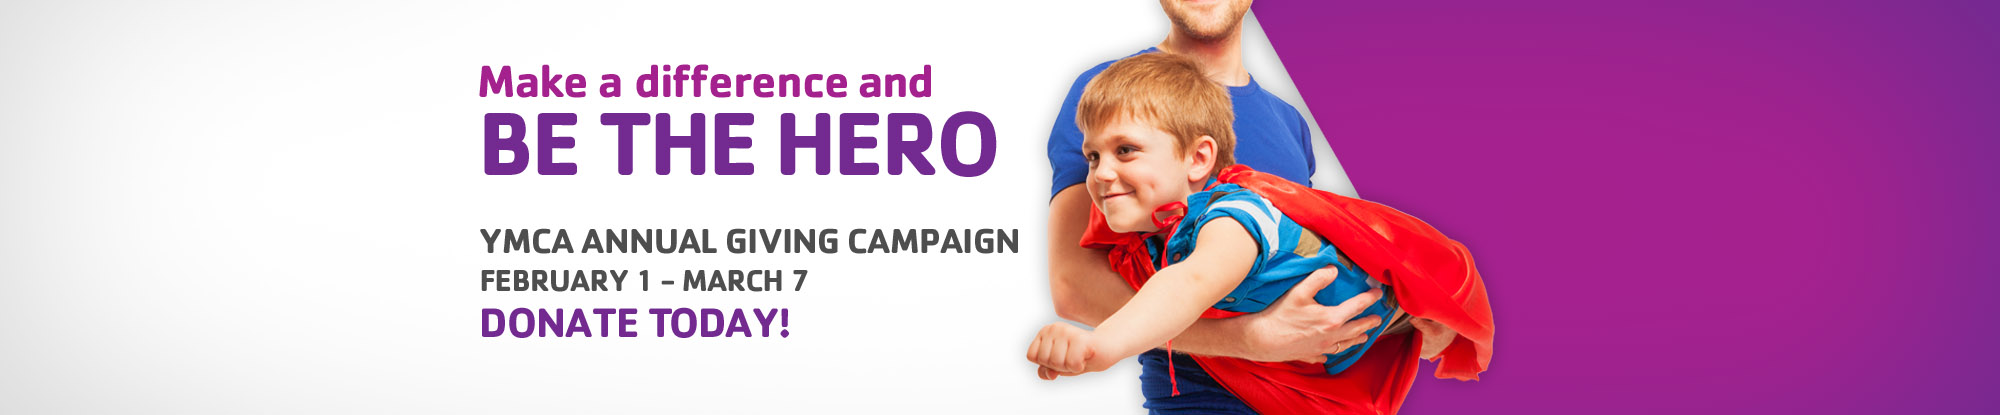 Make a Difference and Be the Hero! YMCA's Annual Giving Campaign